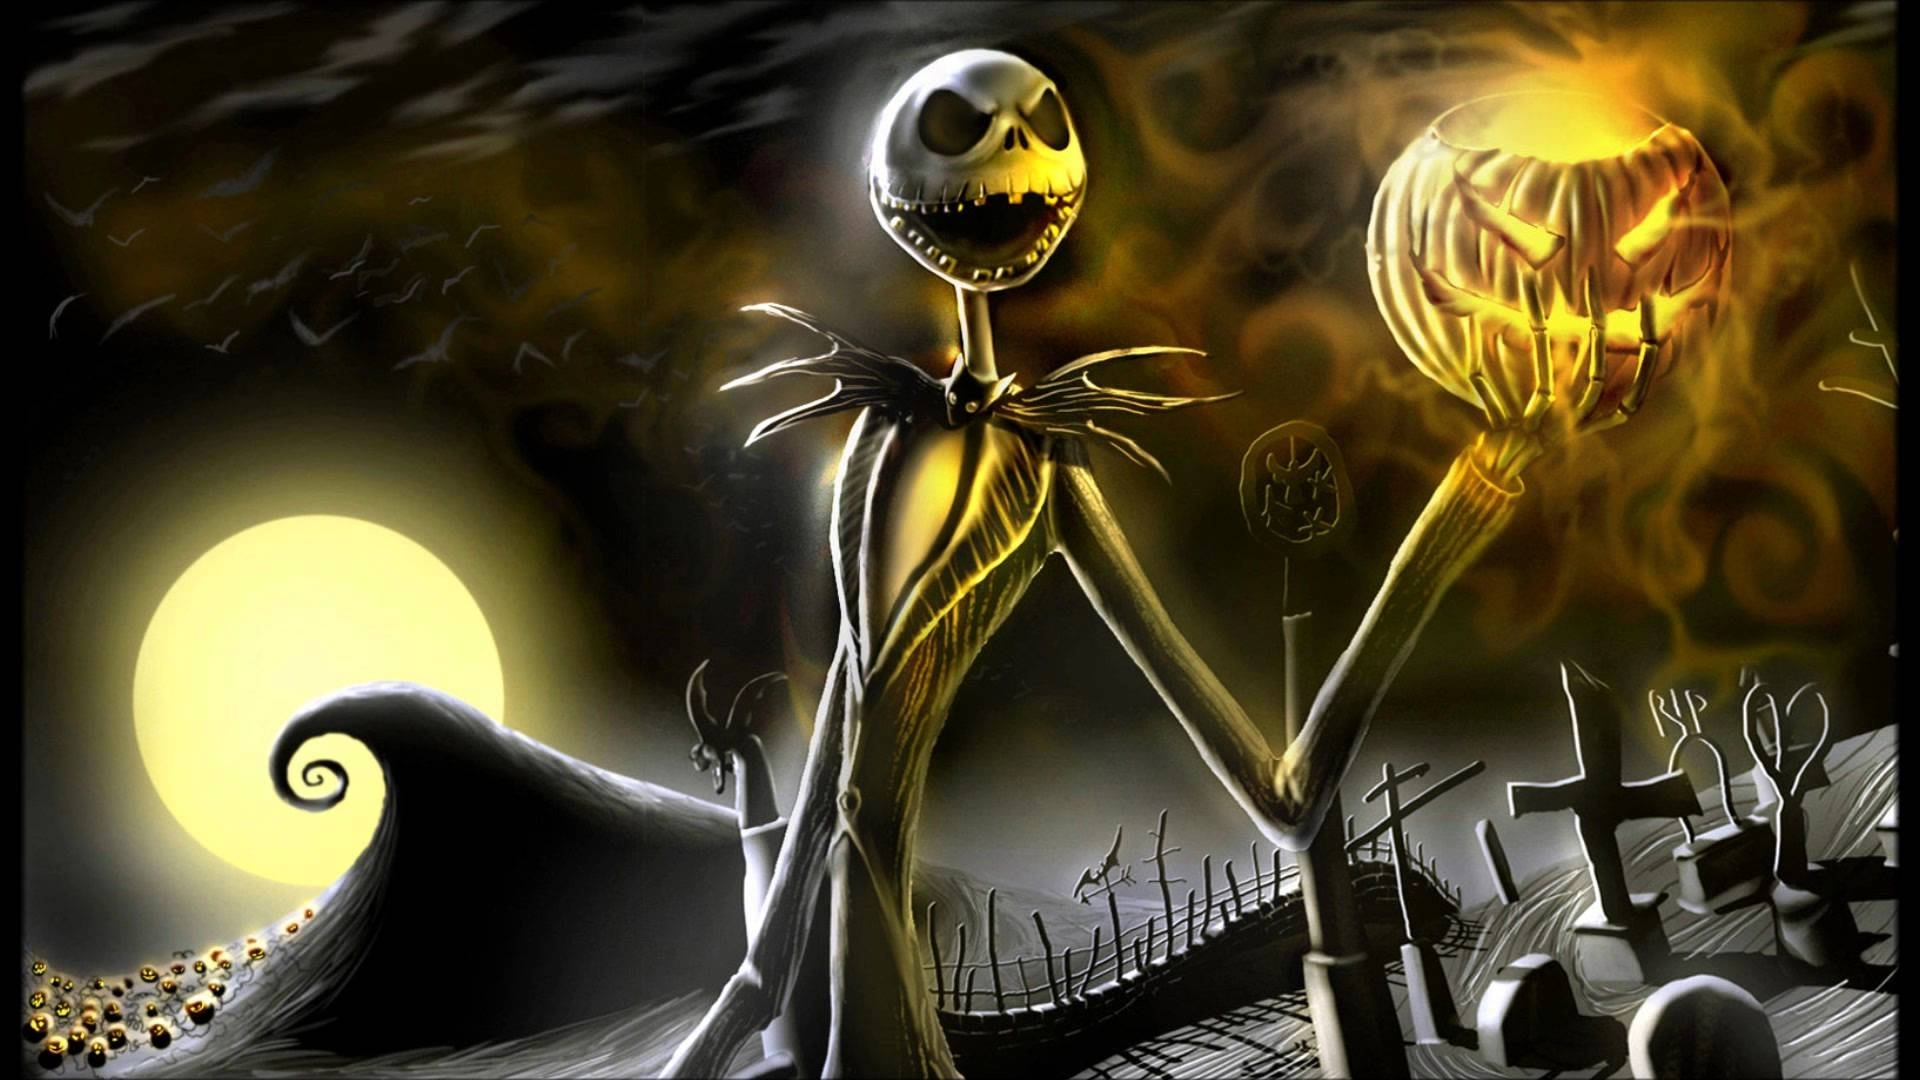 10 Most Popular Nightmare Before Christmas Jack Skellington Wallpaper FULL HD 1920×1080 For PC Desktop